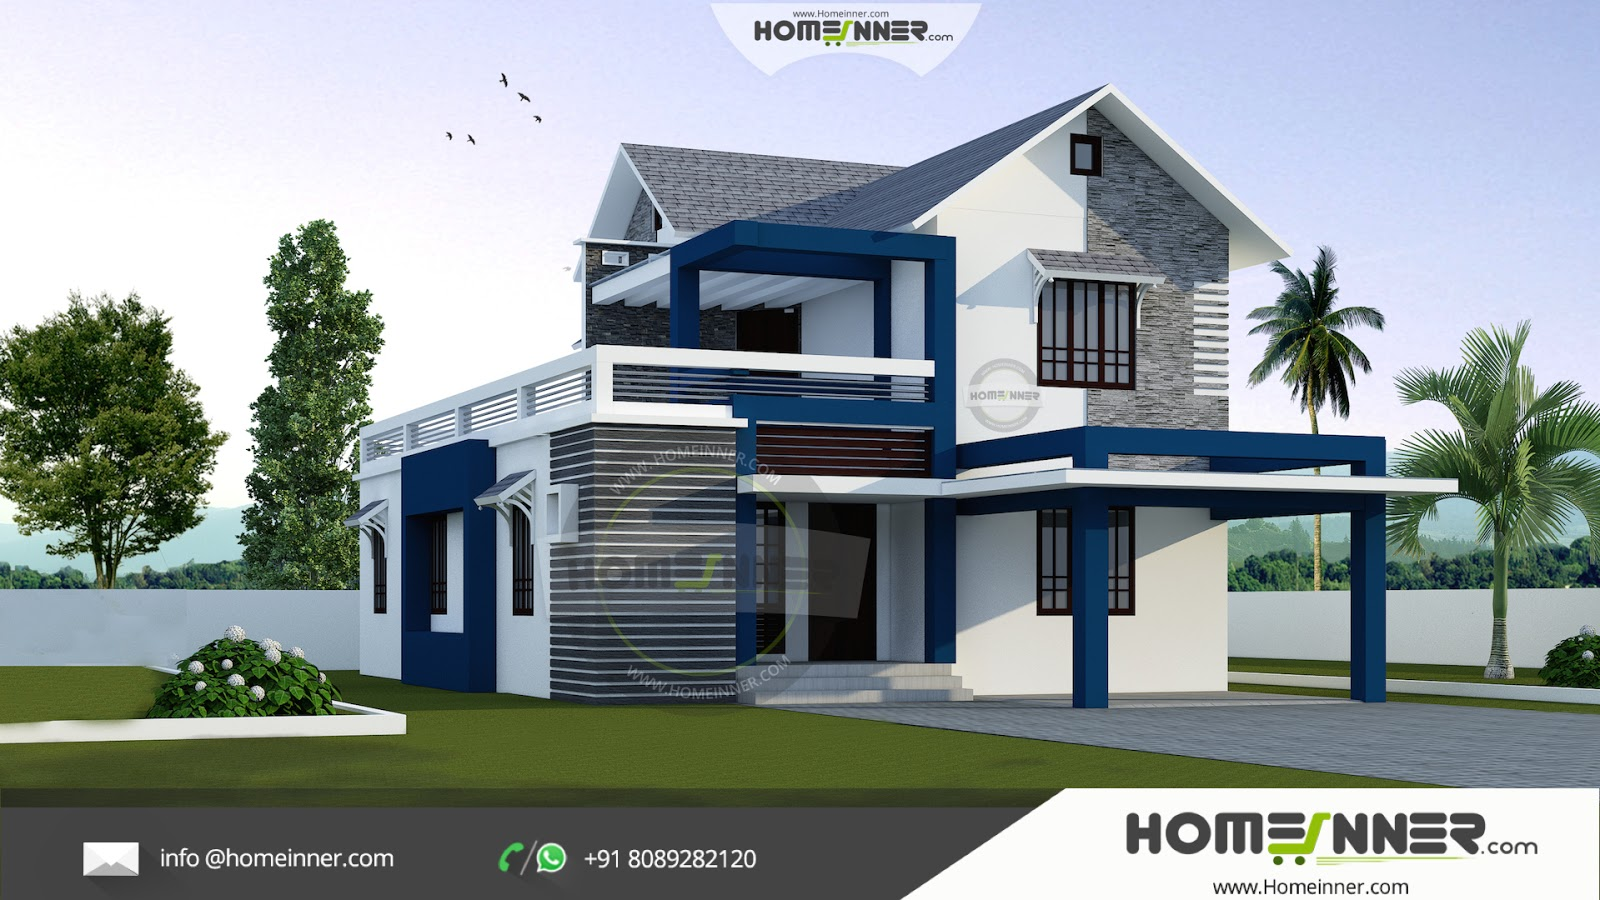 Modern stylish 3 bhk small budget 1500 sqft indian home for Modern home design in india